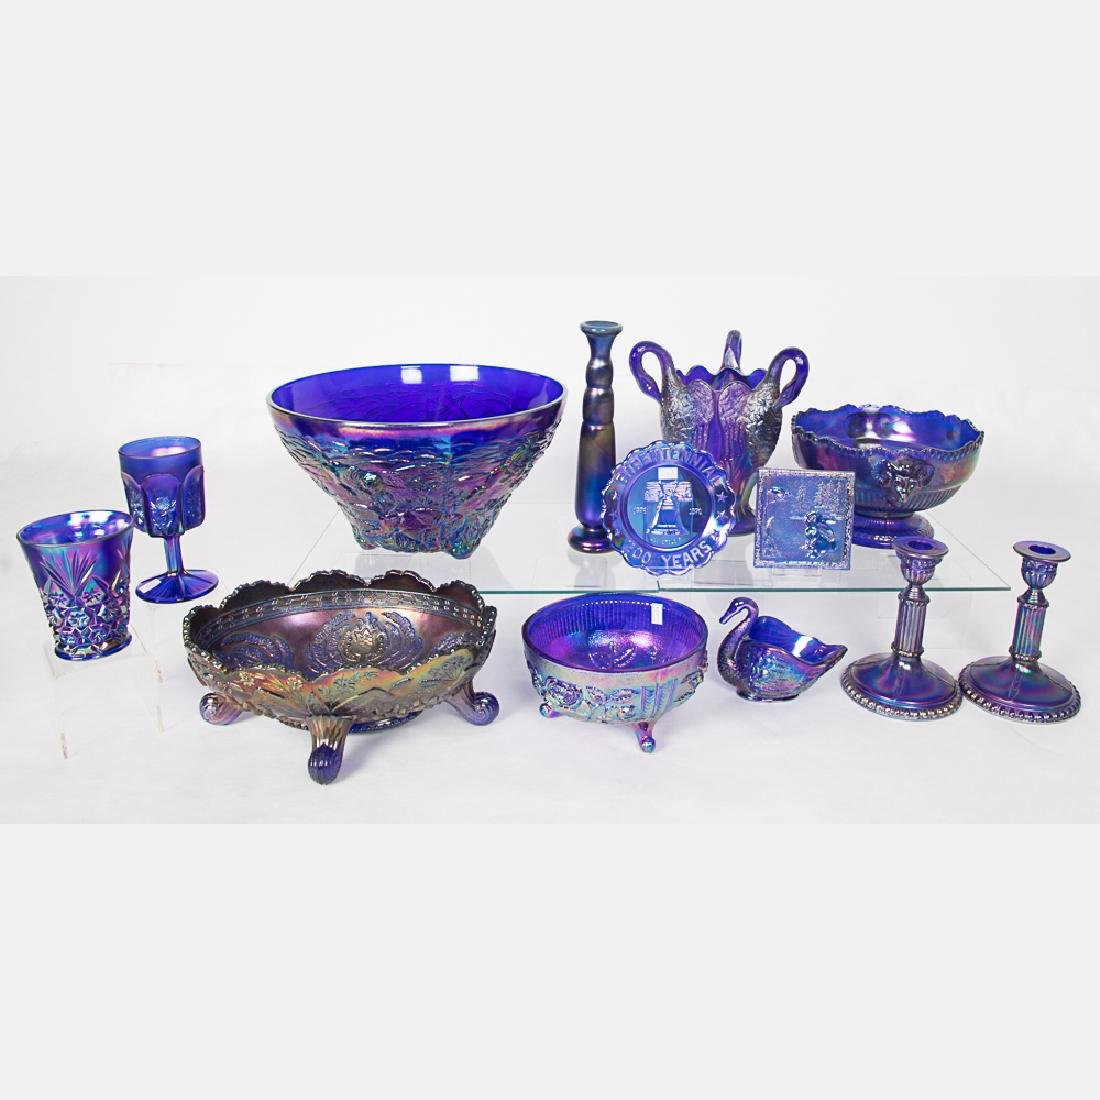 A Collection of Cobalt Carnival Glass Serving and